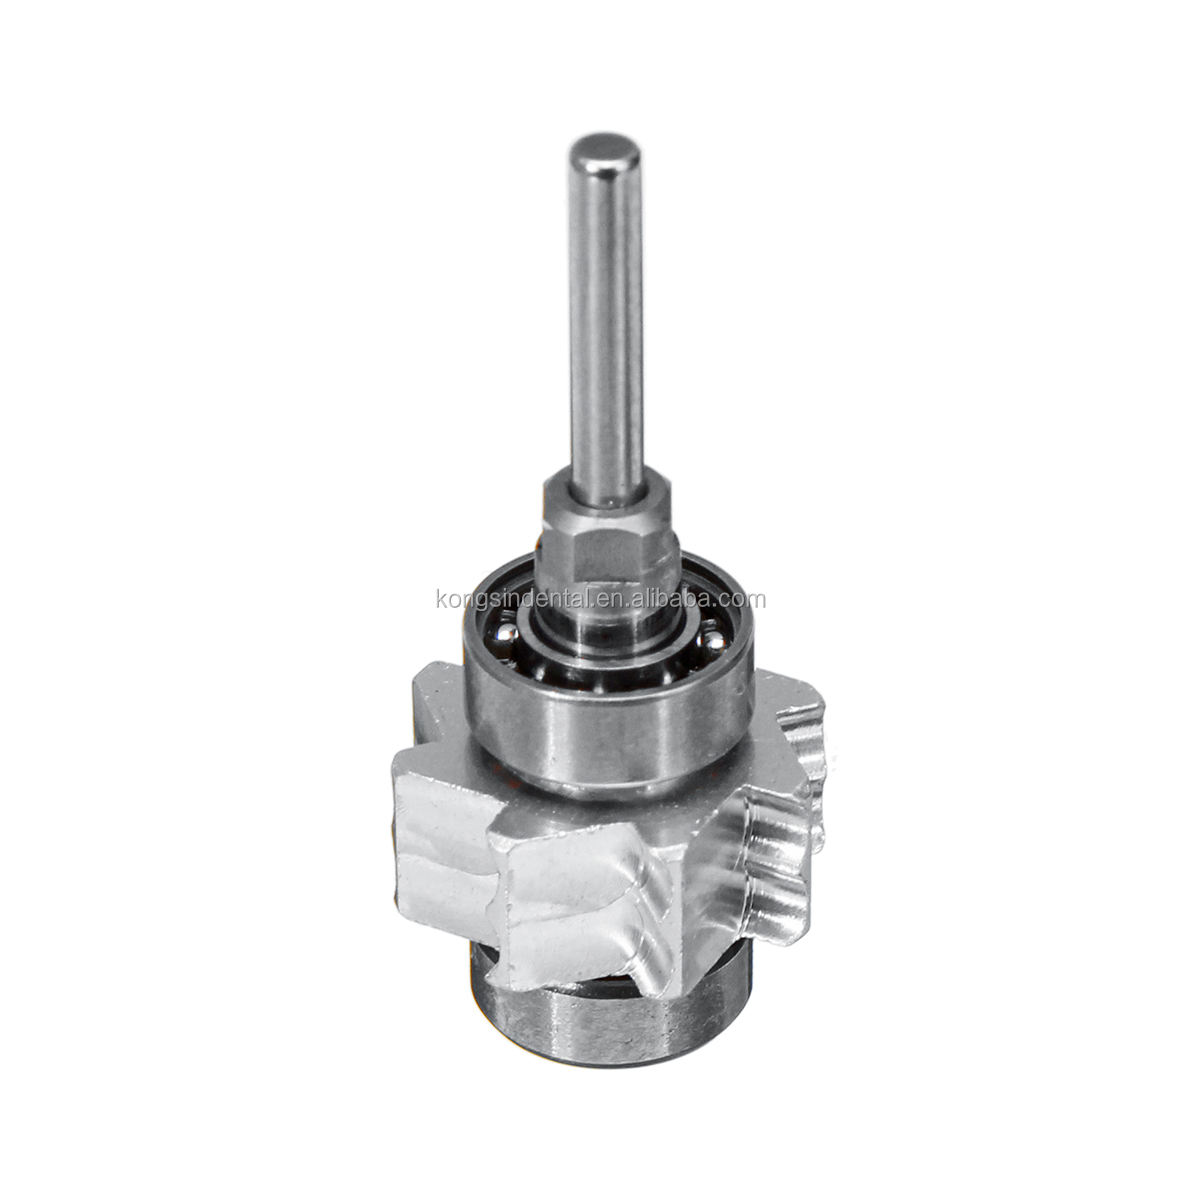 Dental Turbines Cartridge Rotor For High speed handpiece